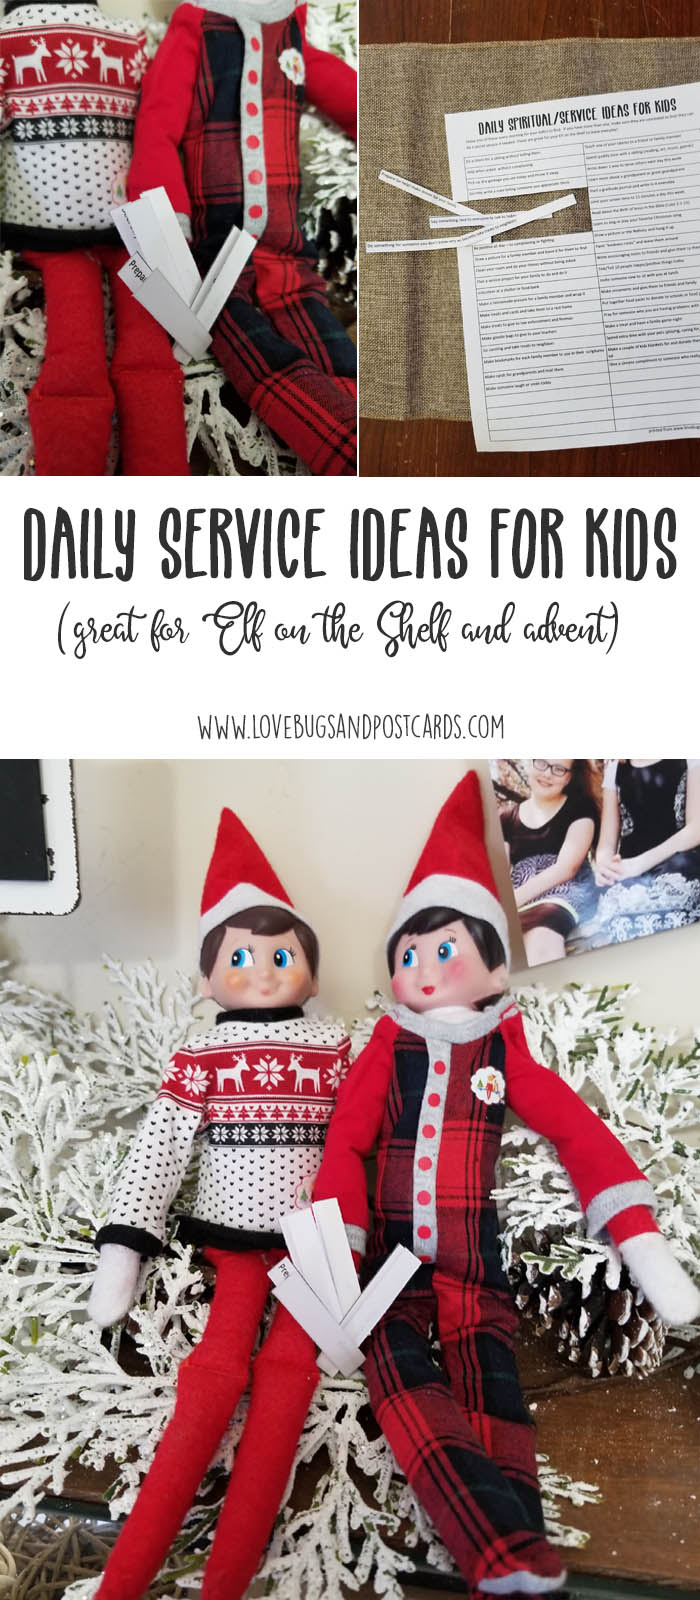 Daily Service Ideas for Kids (great for Elf on the Shelf and Advent Calendars)